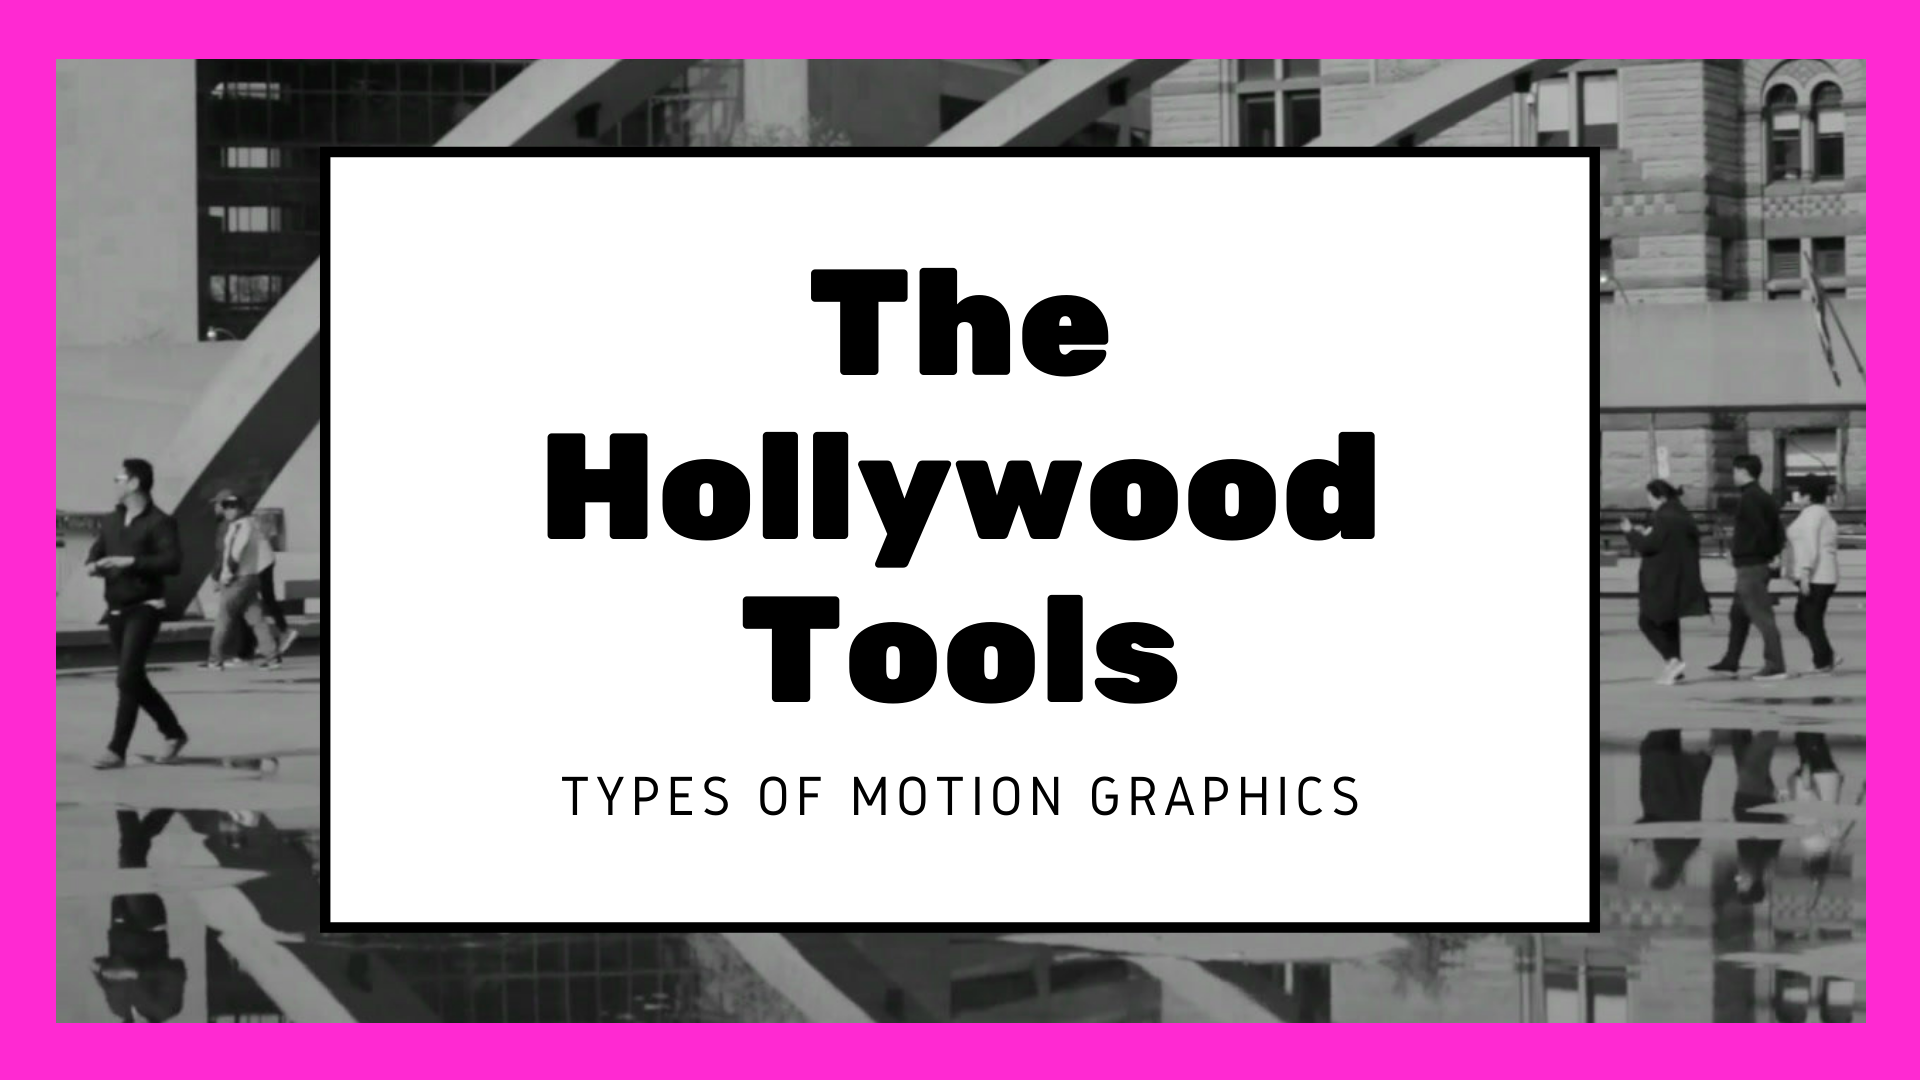 Ever wonder what types of motion graphics Hollywood uses!